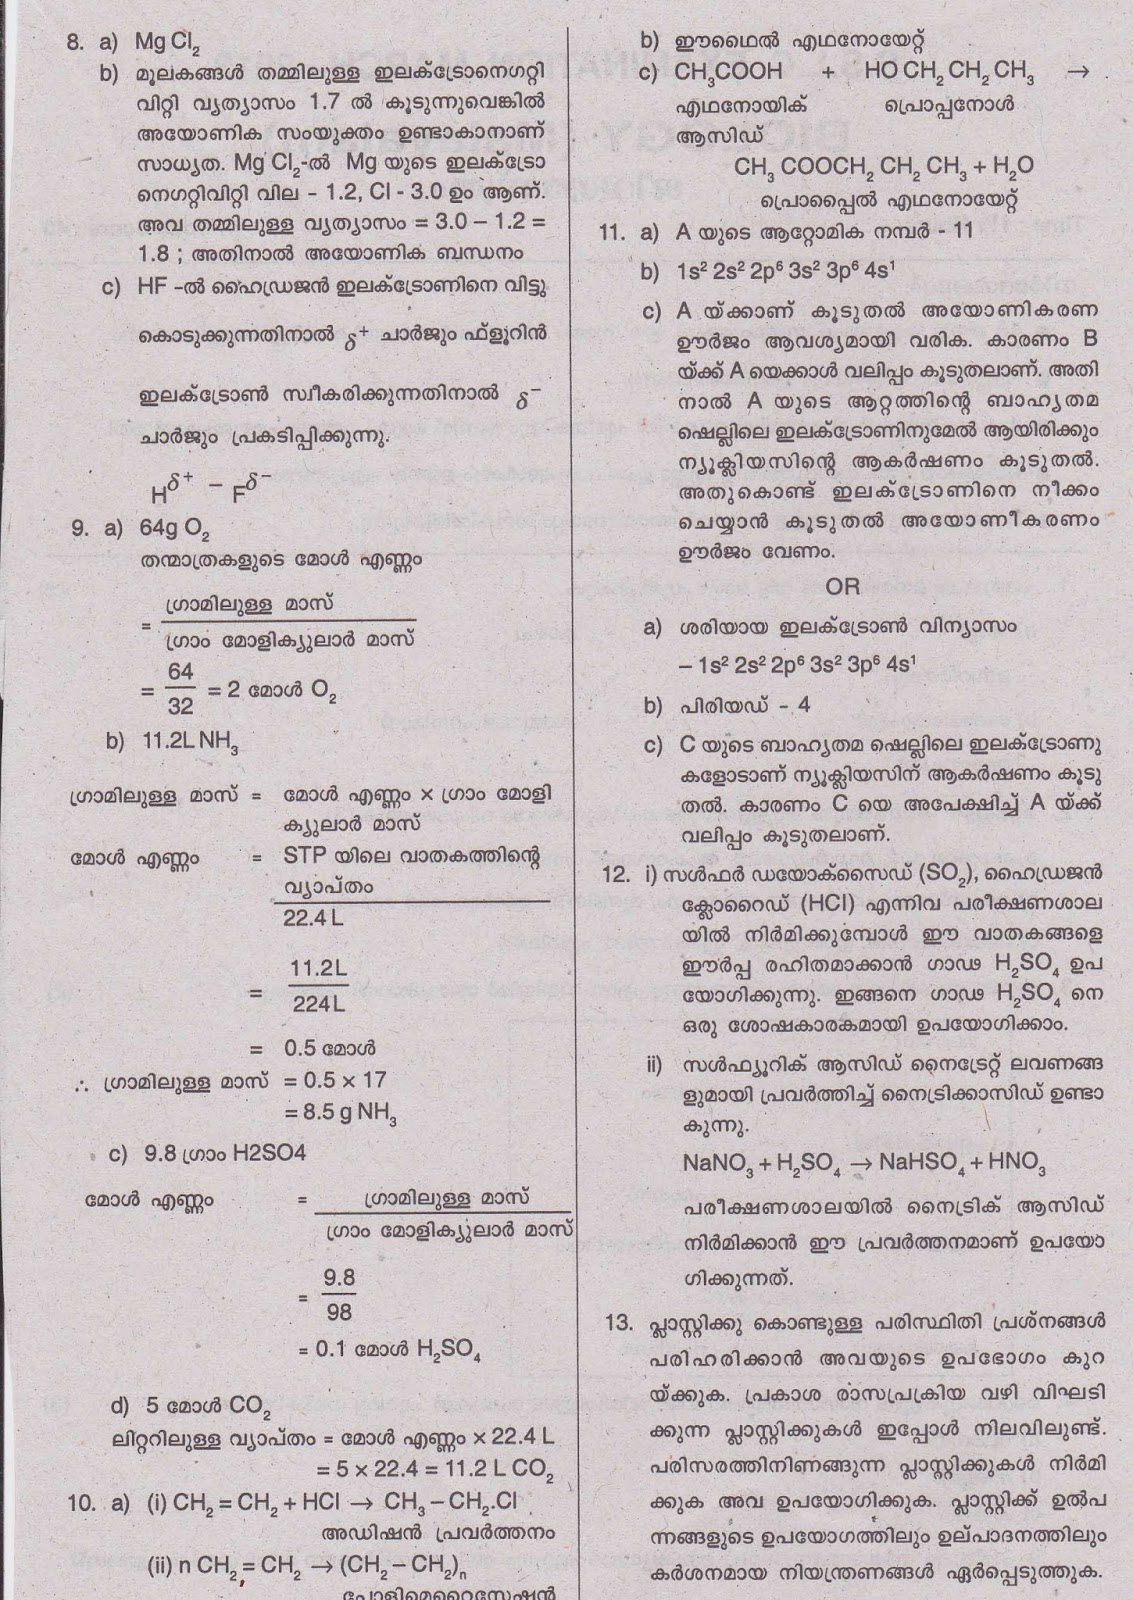 sslc chemistry question paper Question pool std x legal action will be taken against anyone who sells copies  of the question pool the copyright of the same has not been granted to anyone.